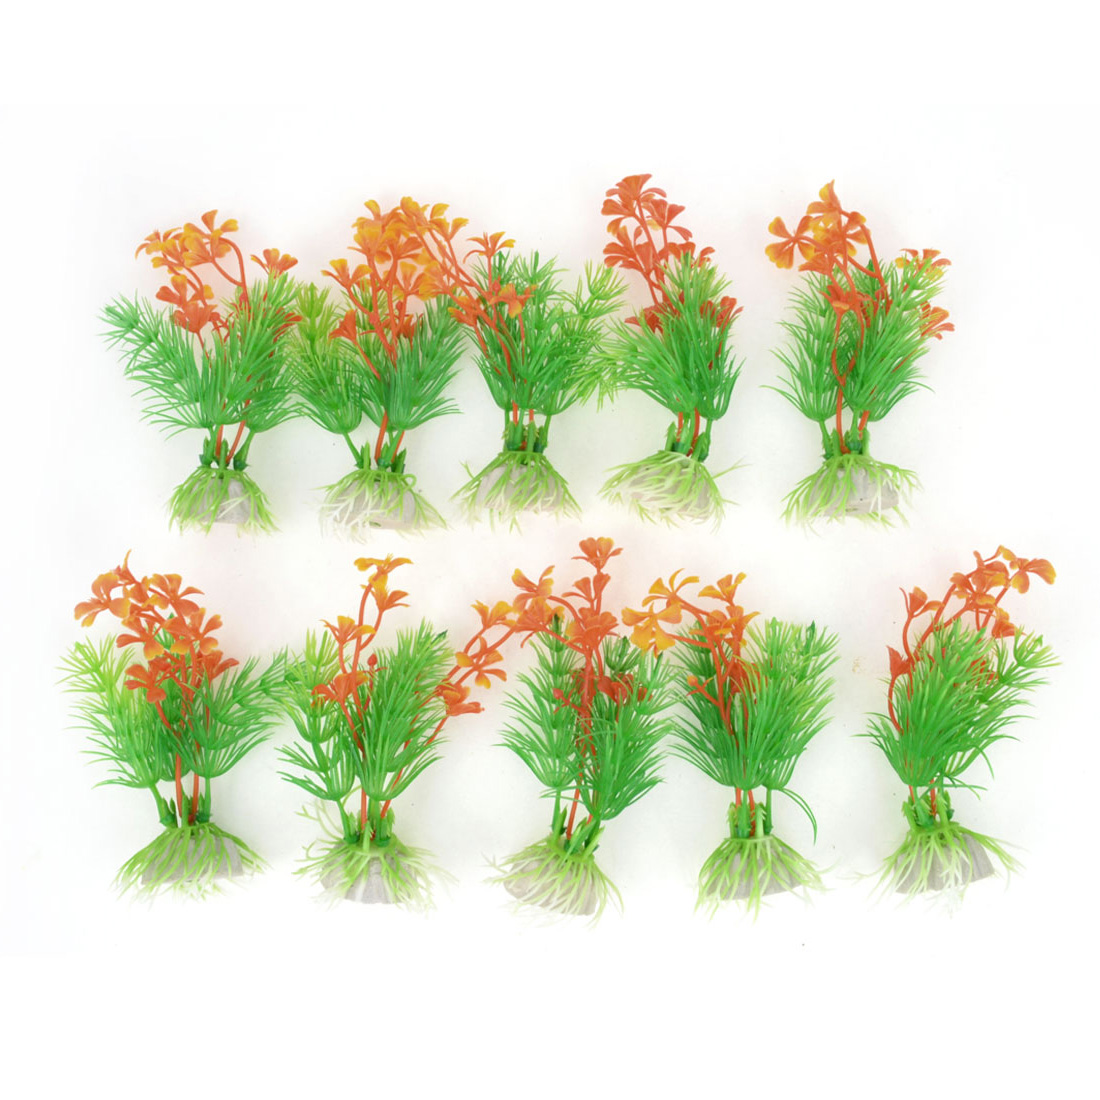 "10pcs 4.1"" Green Orange Leaves Aquarium Simulation Plastic Aquatic Plant Ornament"